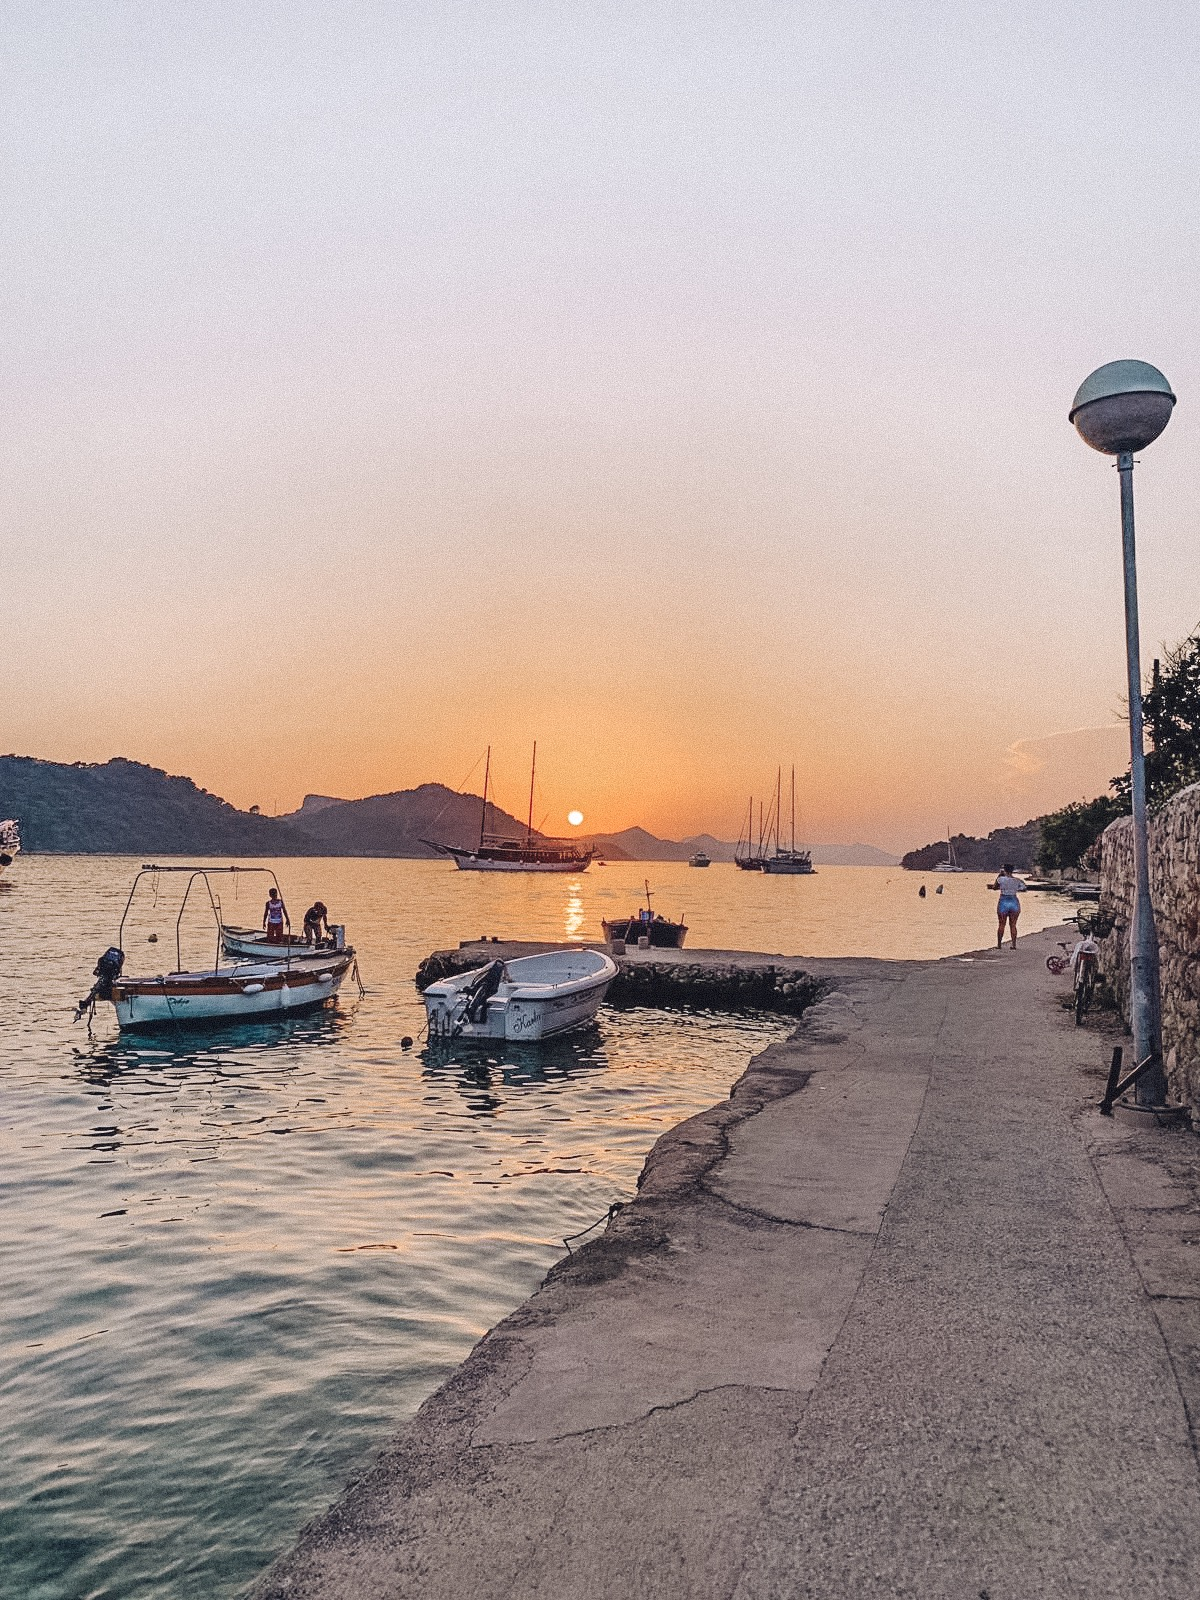 An expected stop along the way lead us to the most beautiful sunset in  Šipan Luka Sipanska.